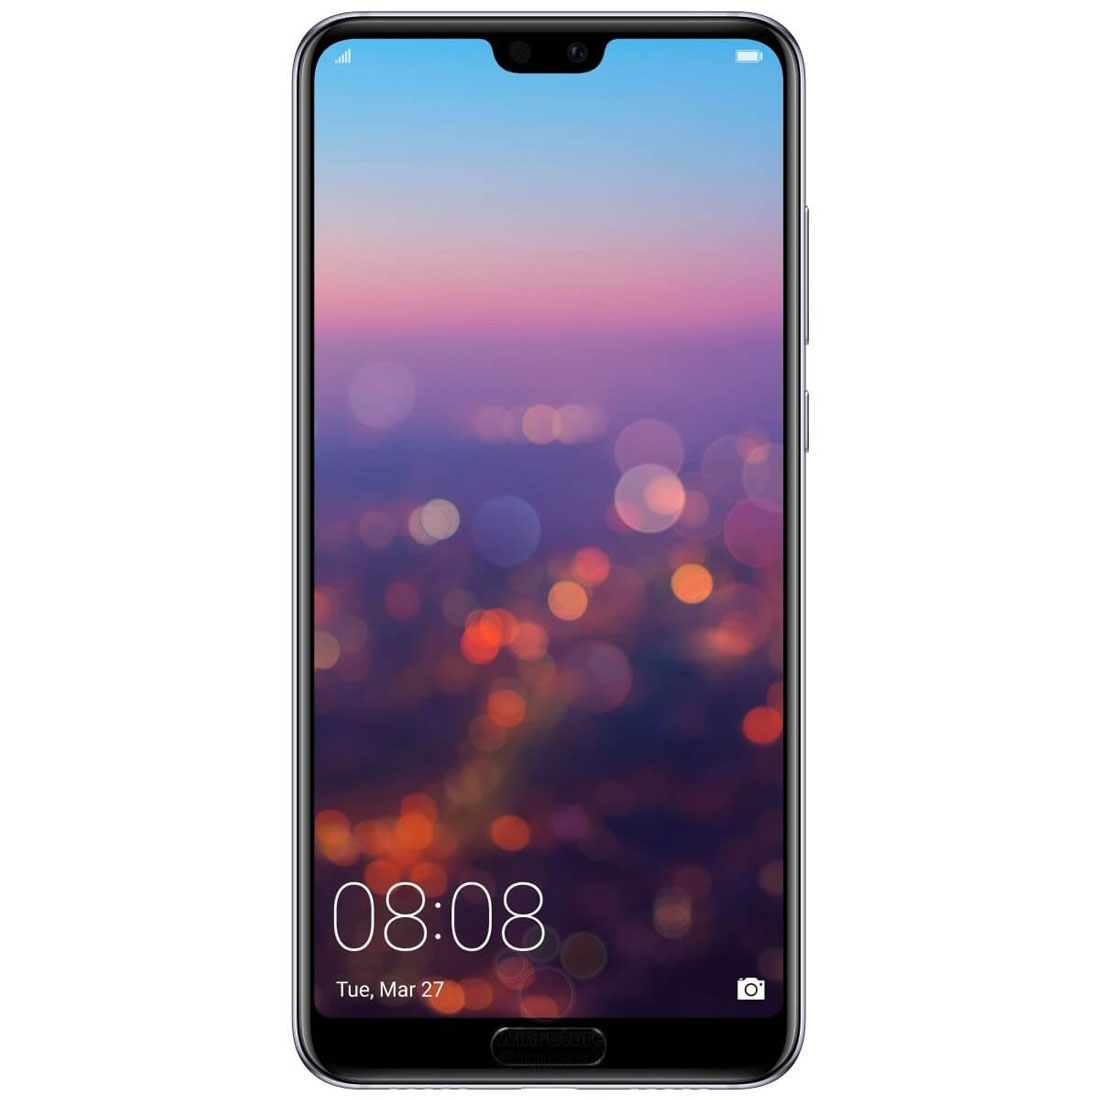 Le smartphone Huawei P20 Pro.